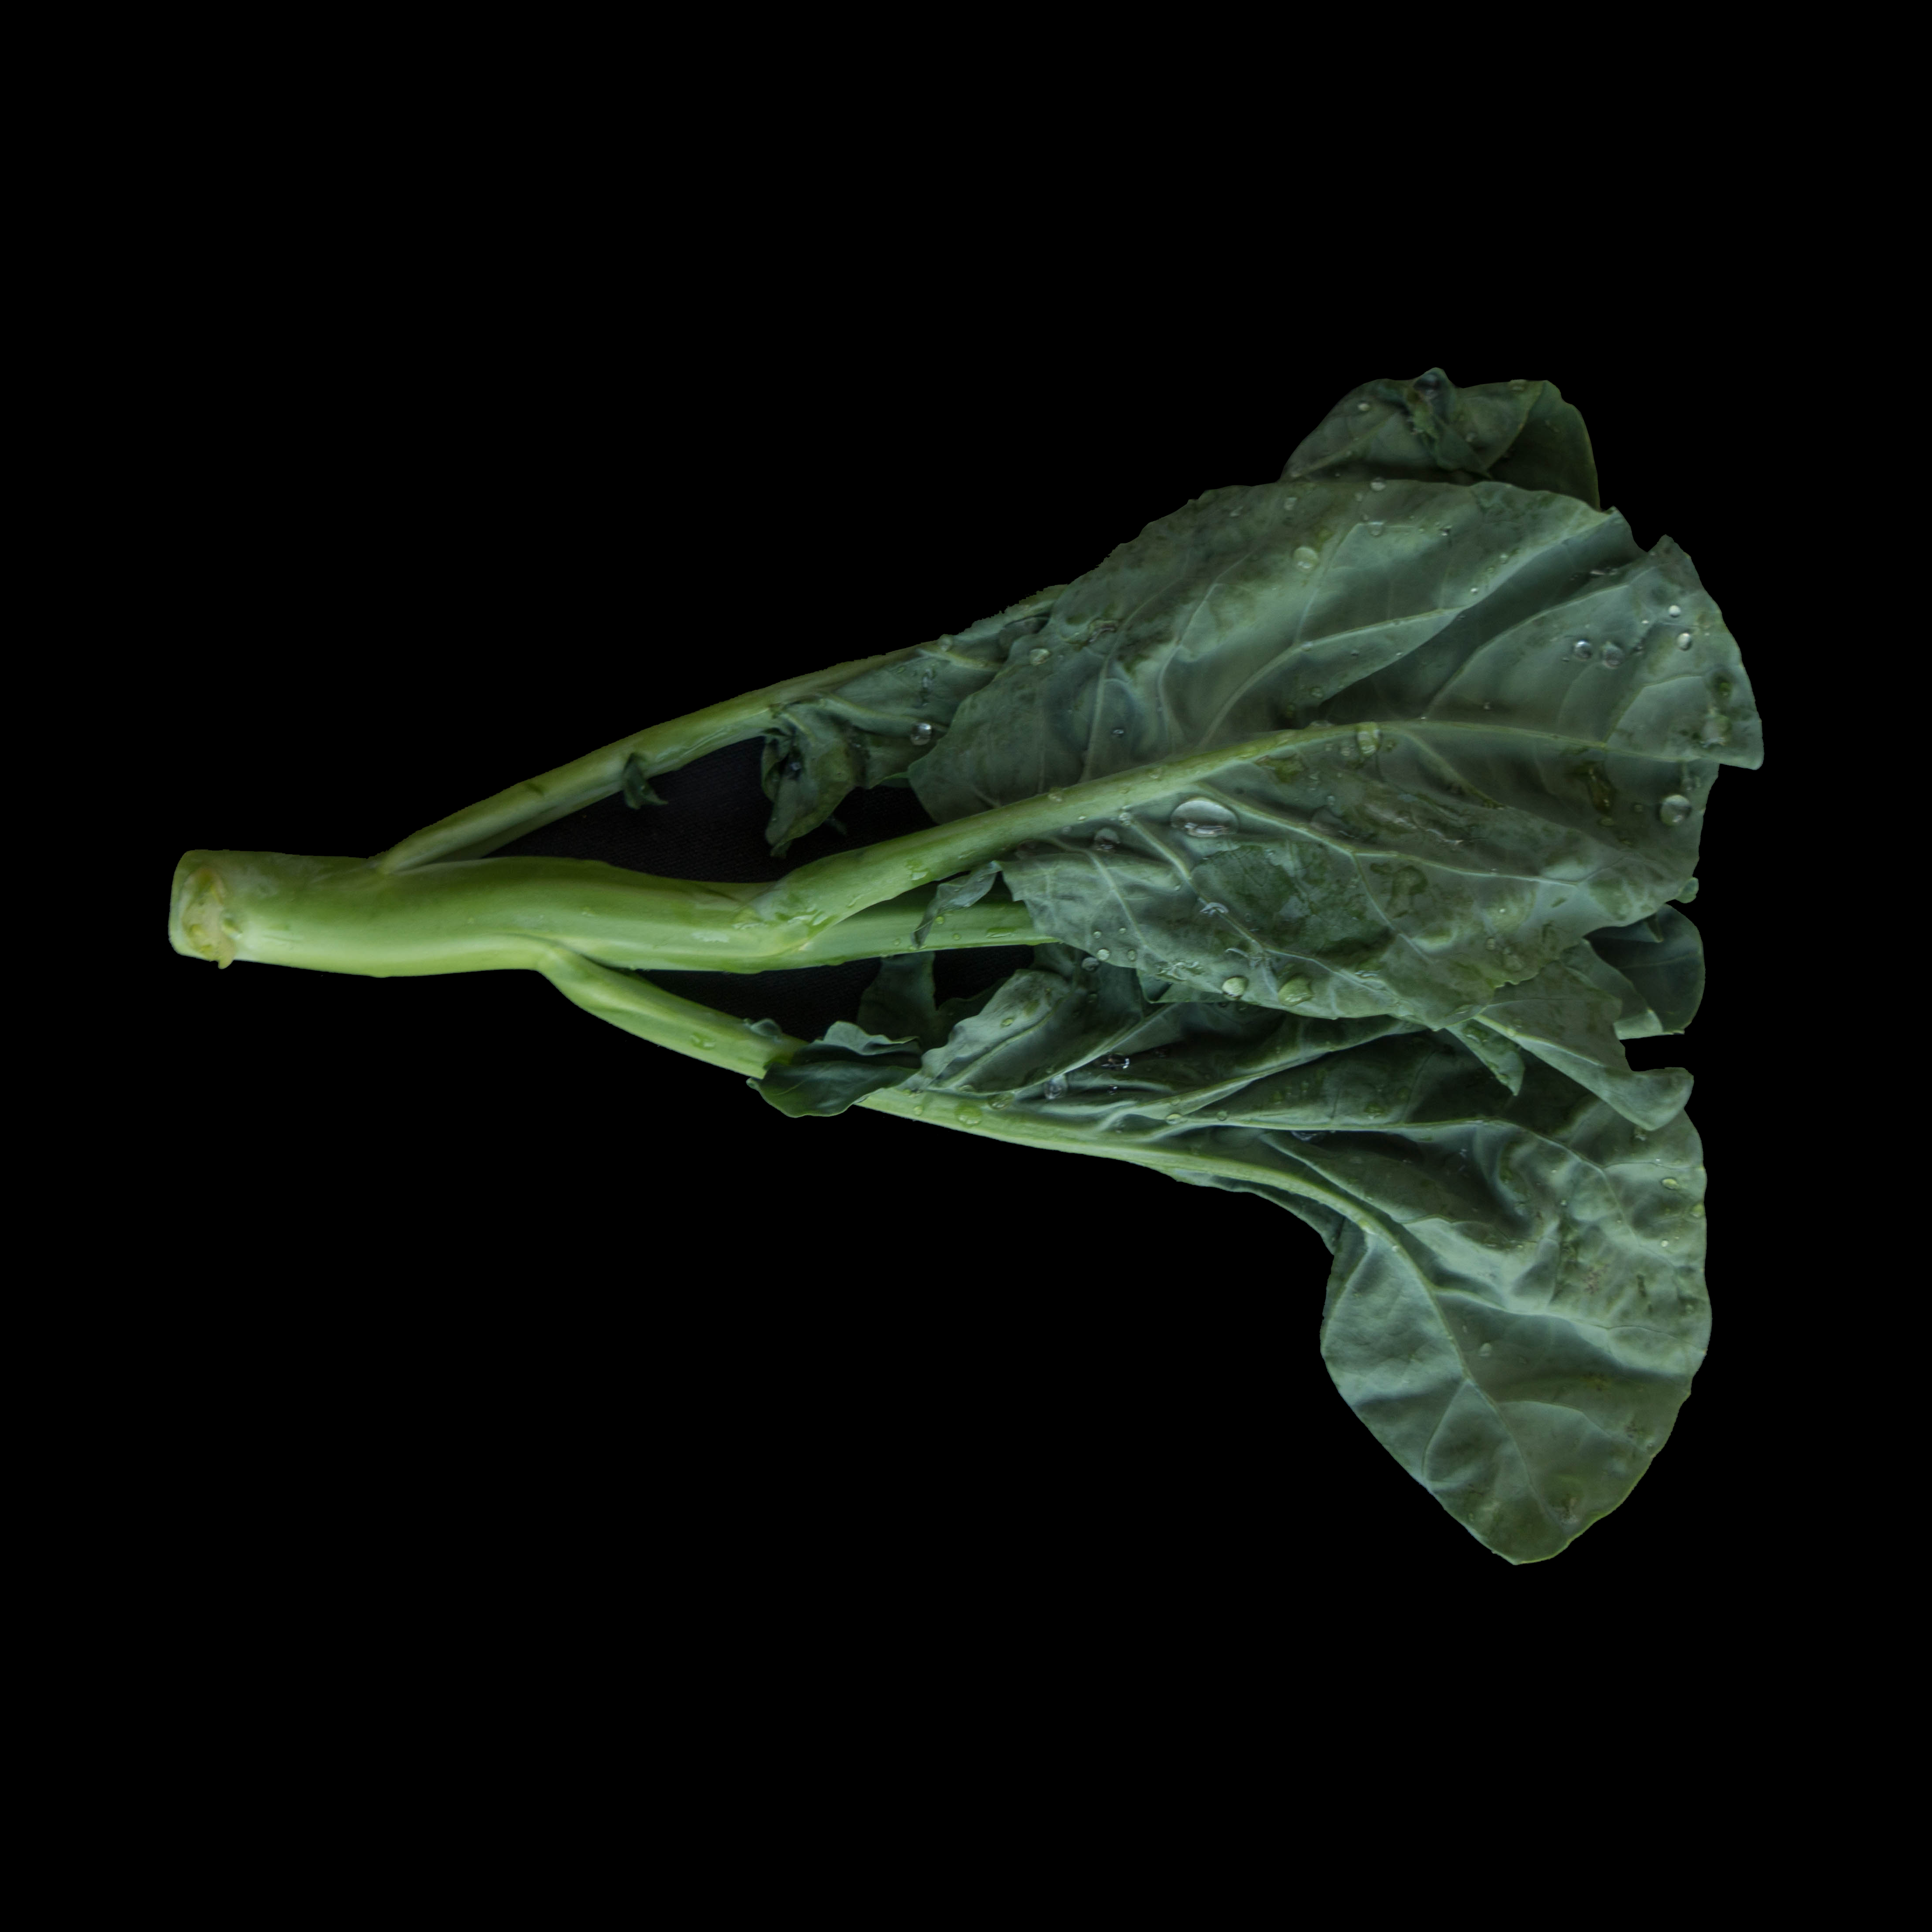 59. 芥蓝 Chinese Broccoli Image